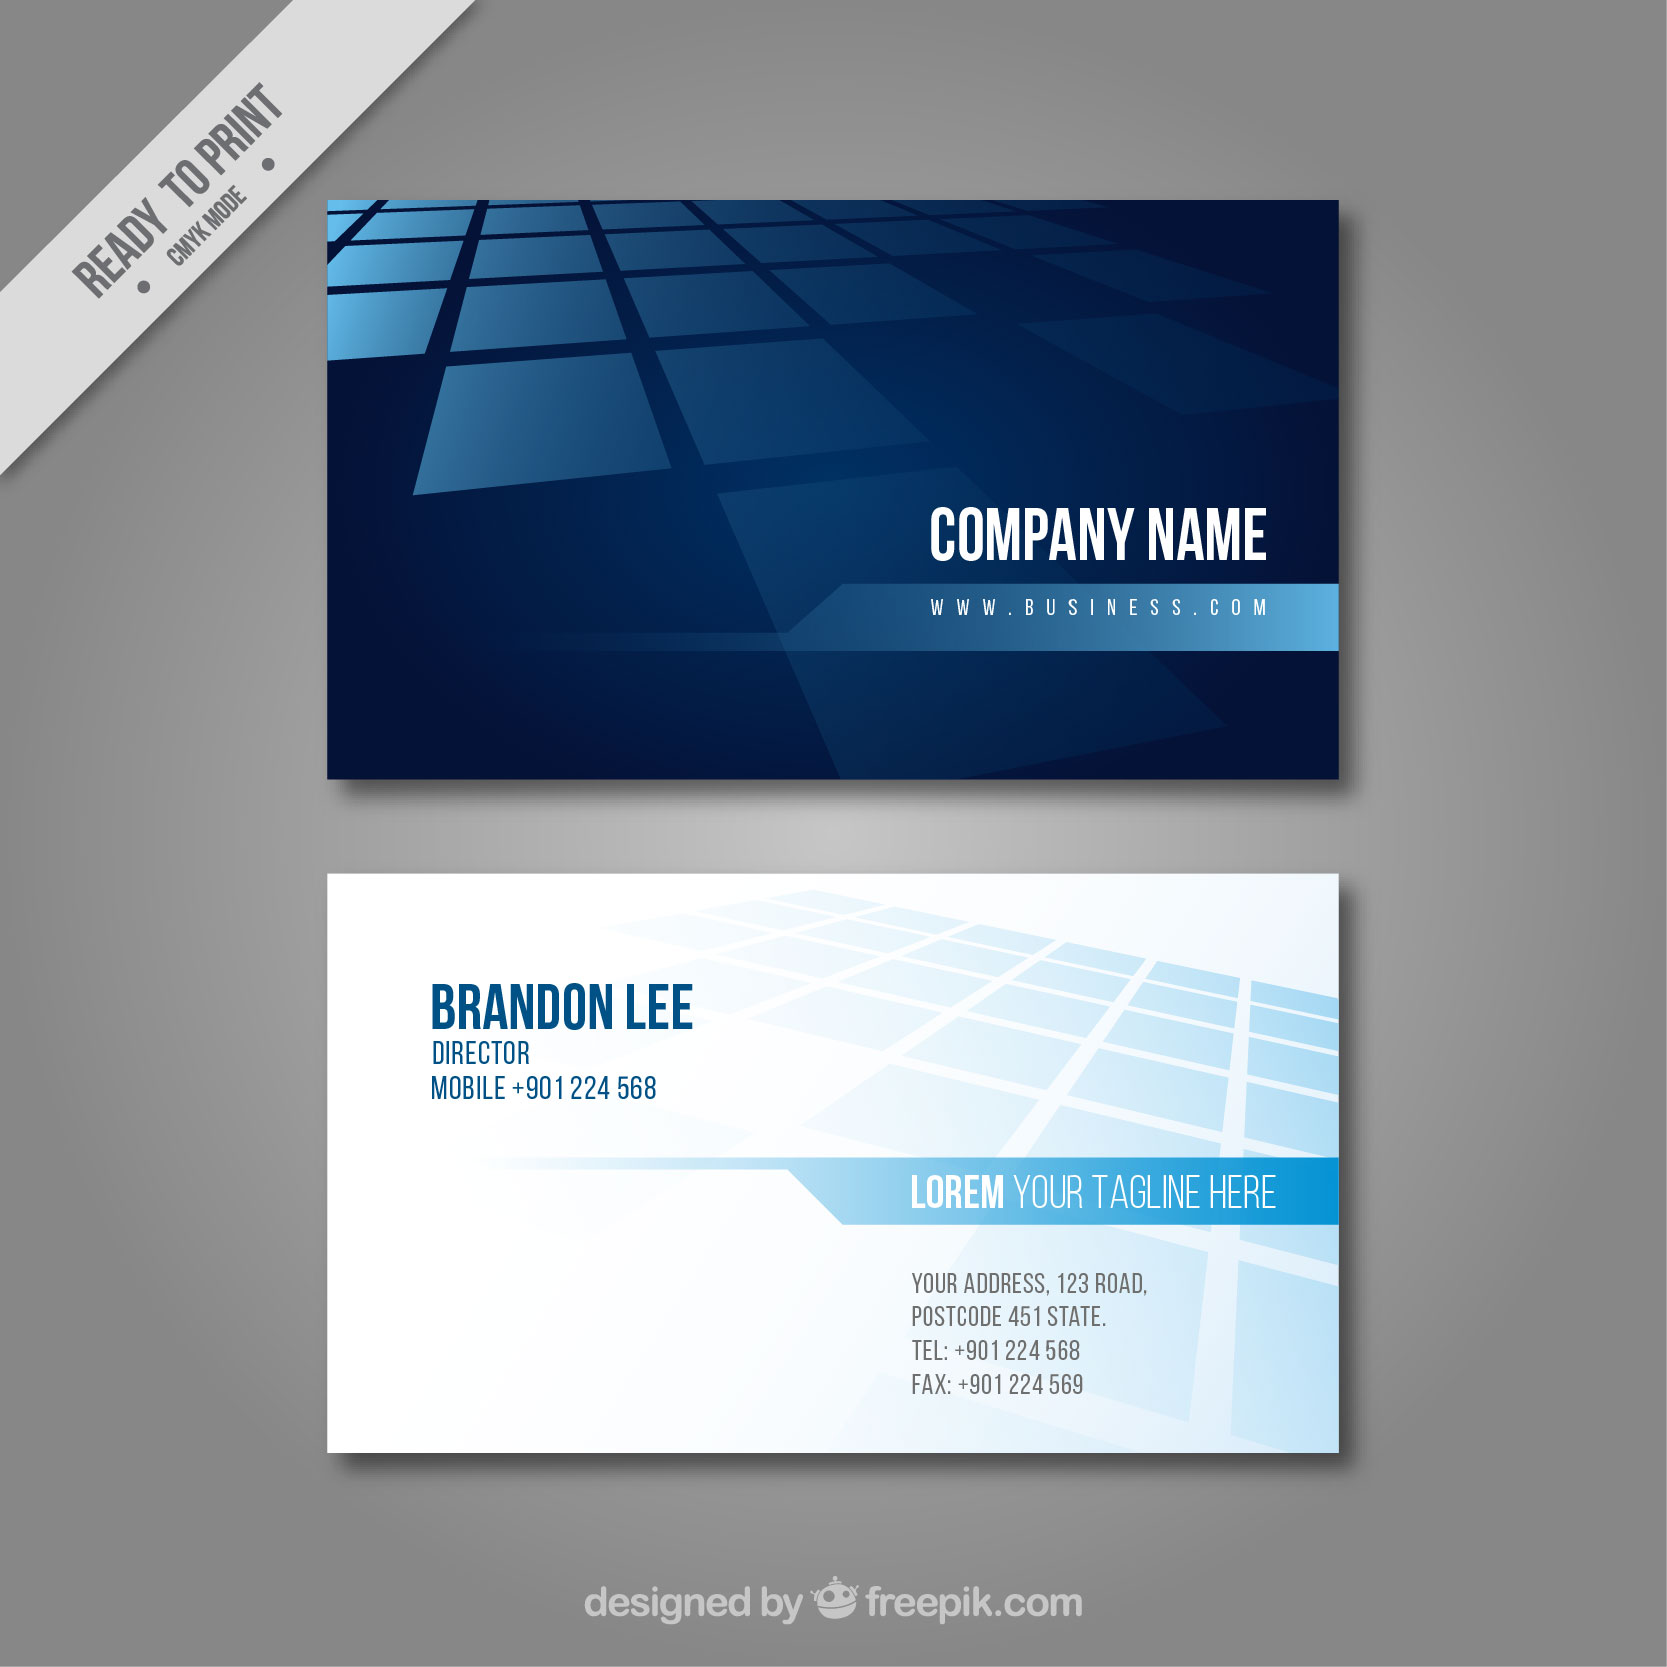 Visiting Card Design  Business Card  Online Visiting